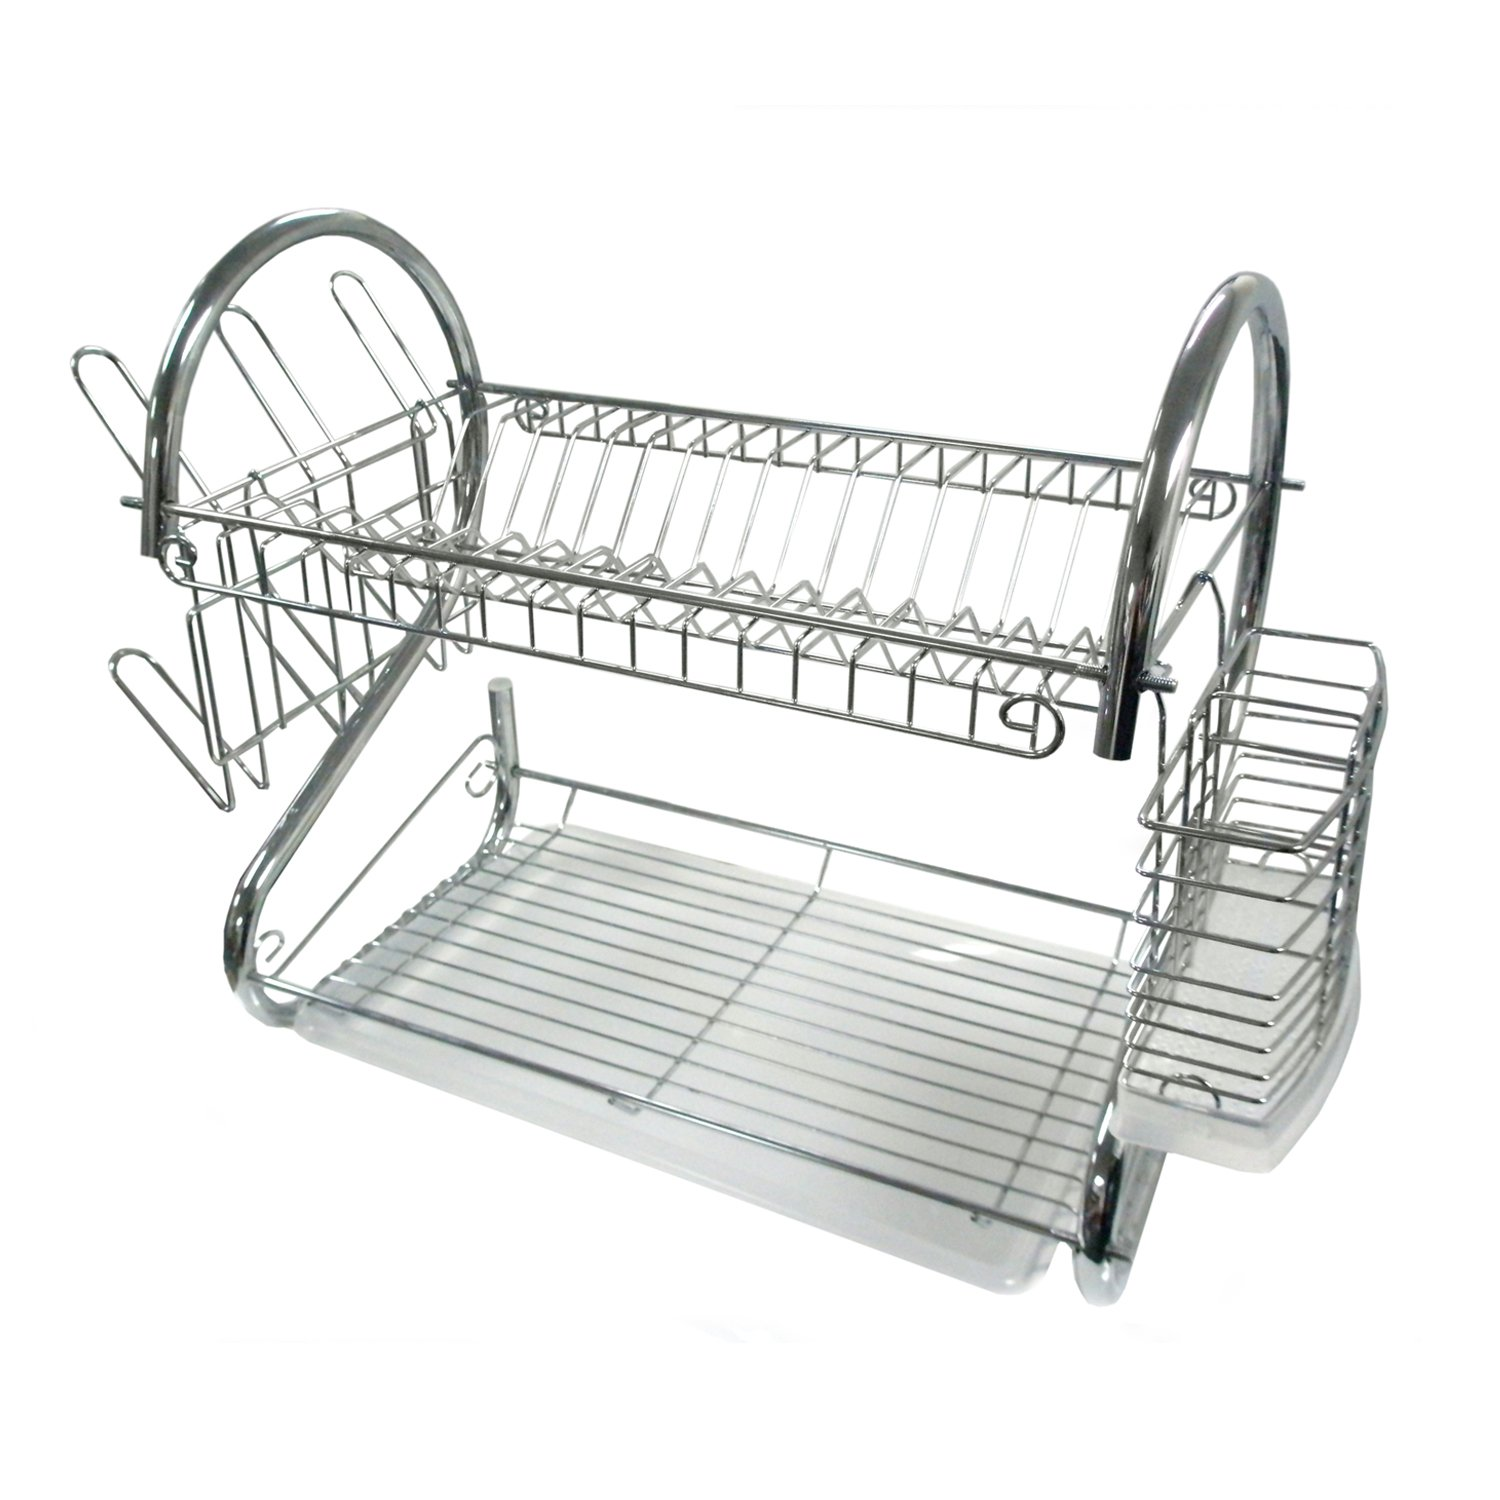 Kitchen Dish Rack Amazoncom Better Chef Dr 22 Chrome 2 Tier Dish Rack 22 Inch